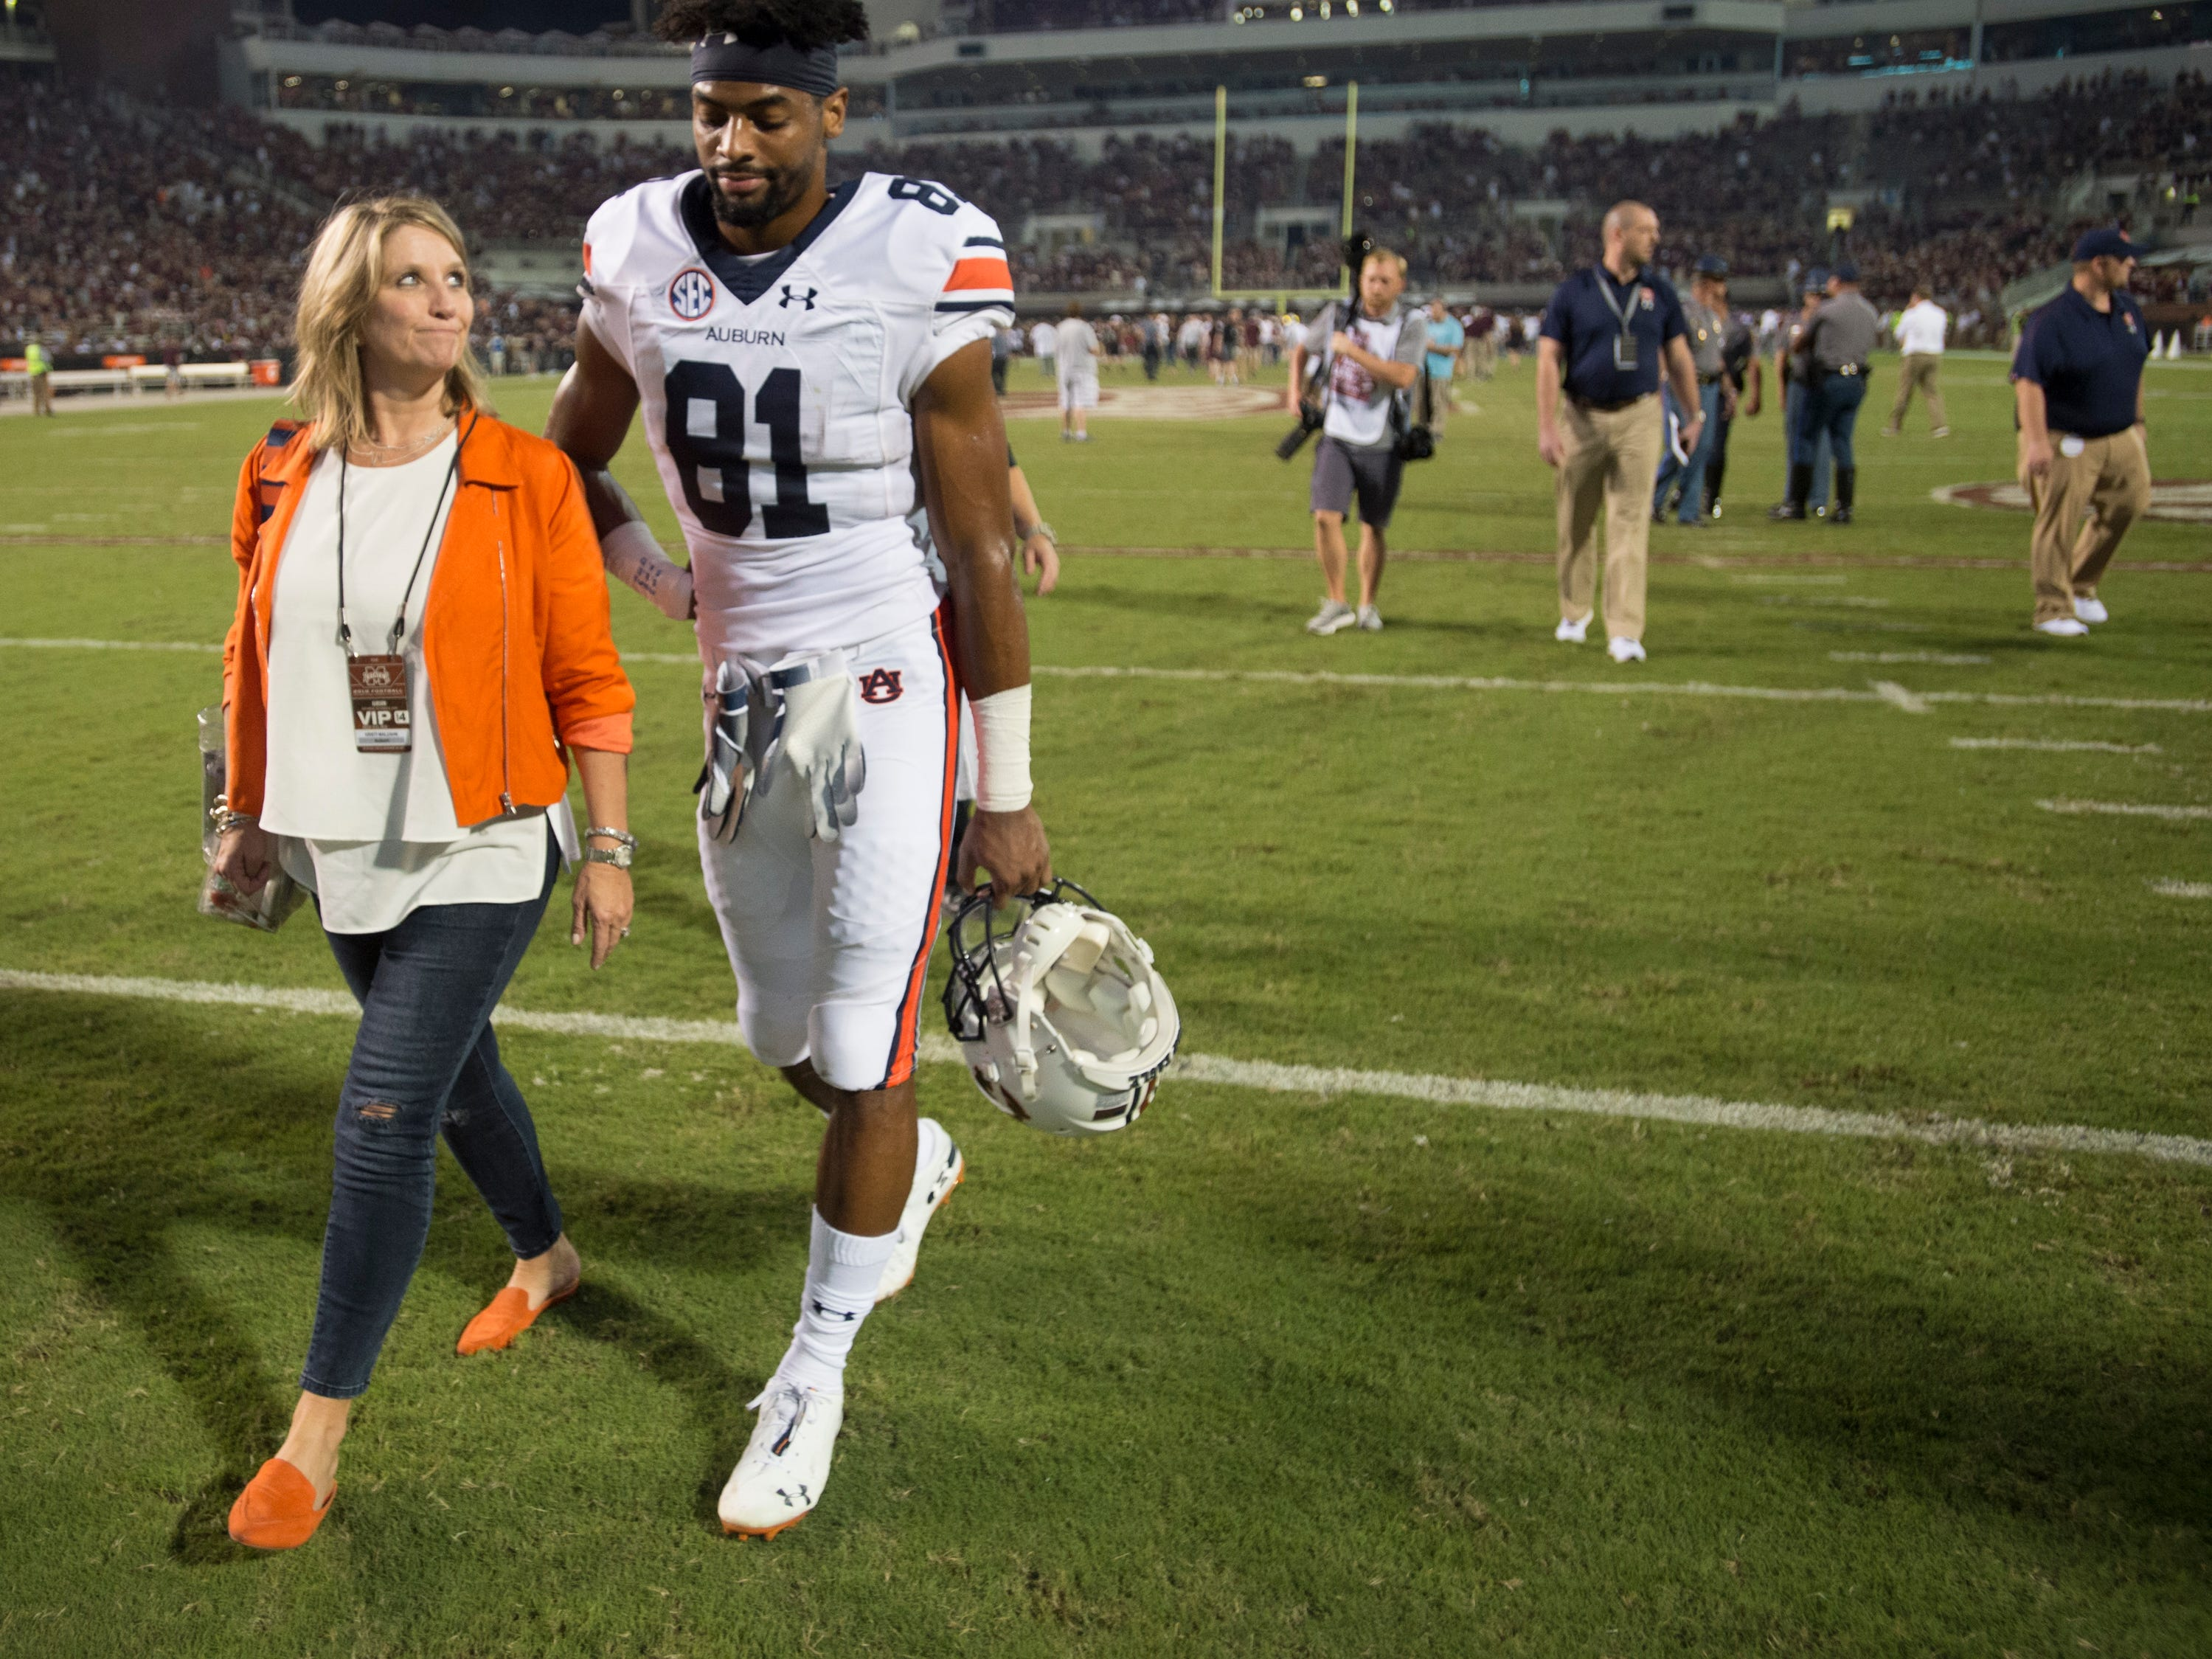 Kristi Malzahn, wife of Auburn head coach Gus Malzahn, talks with Auburn's Darius Slayton (81) as they walk off the field after the game at Davis Wade Stadium in Starkville, Miss., on Saturday, Oct. 6, 2018. Mississippi State defeated Auburn 23-9.